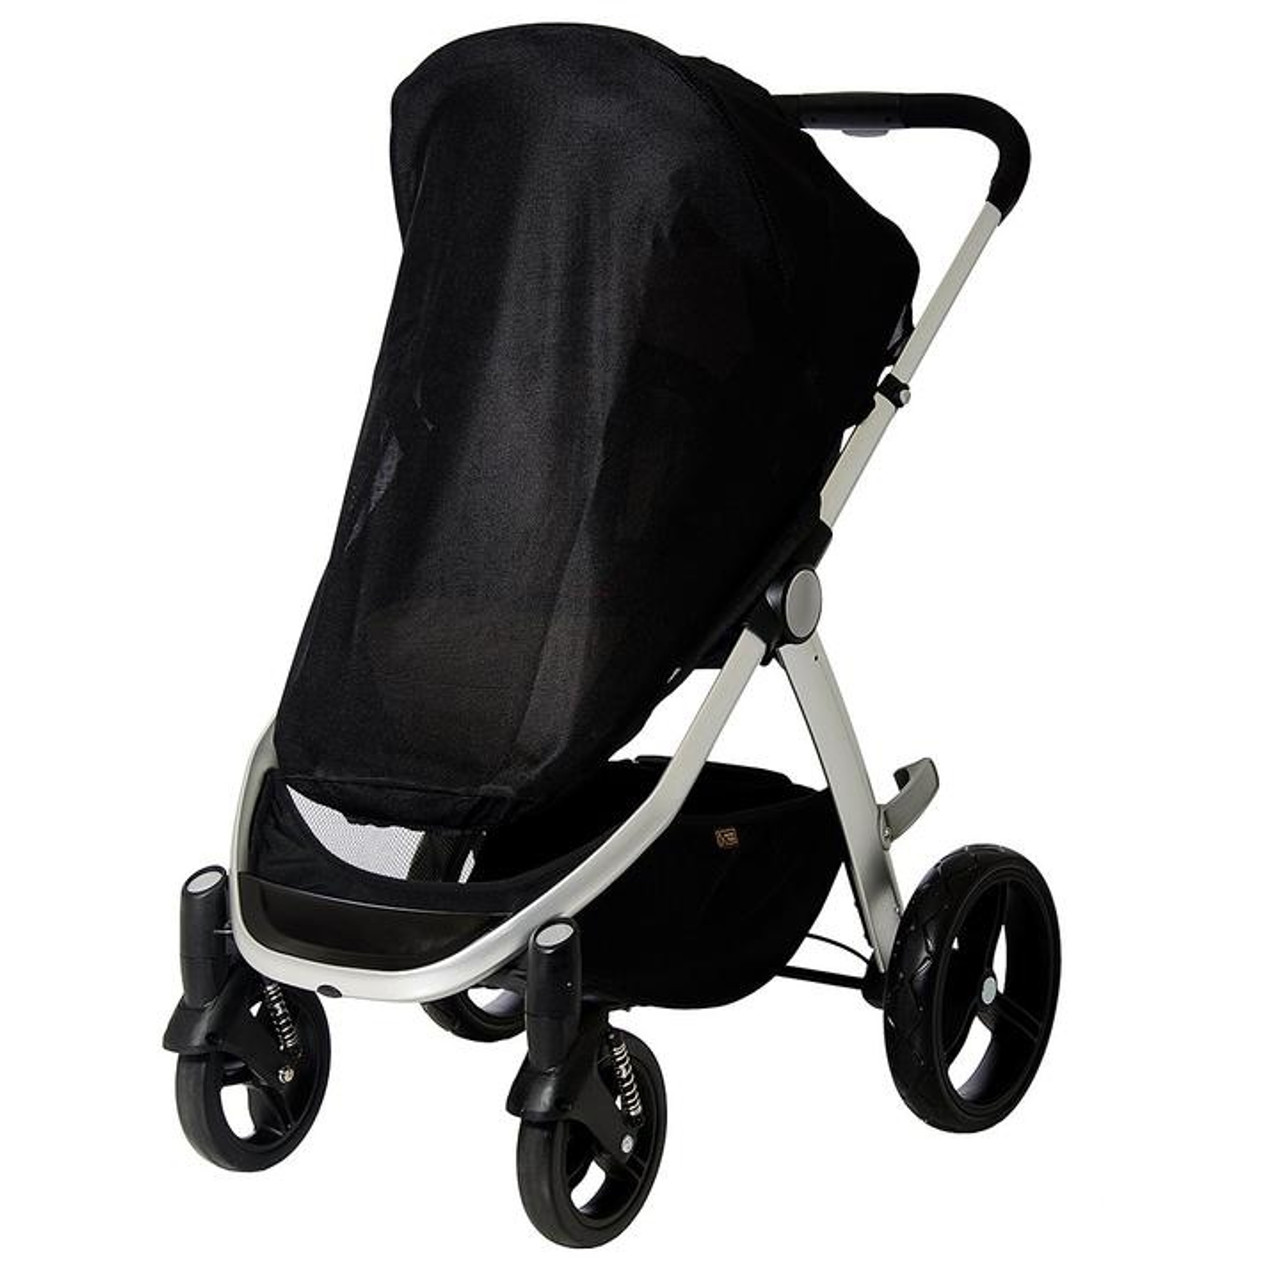 Mountain Buggy Cosmopolitan Mesh Sun Cover at Baby Barn Discounts The custom fit light weight mesh cover for your cosmopolitan or cosmopolitan luxury buggy.